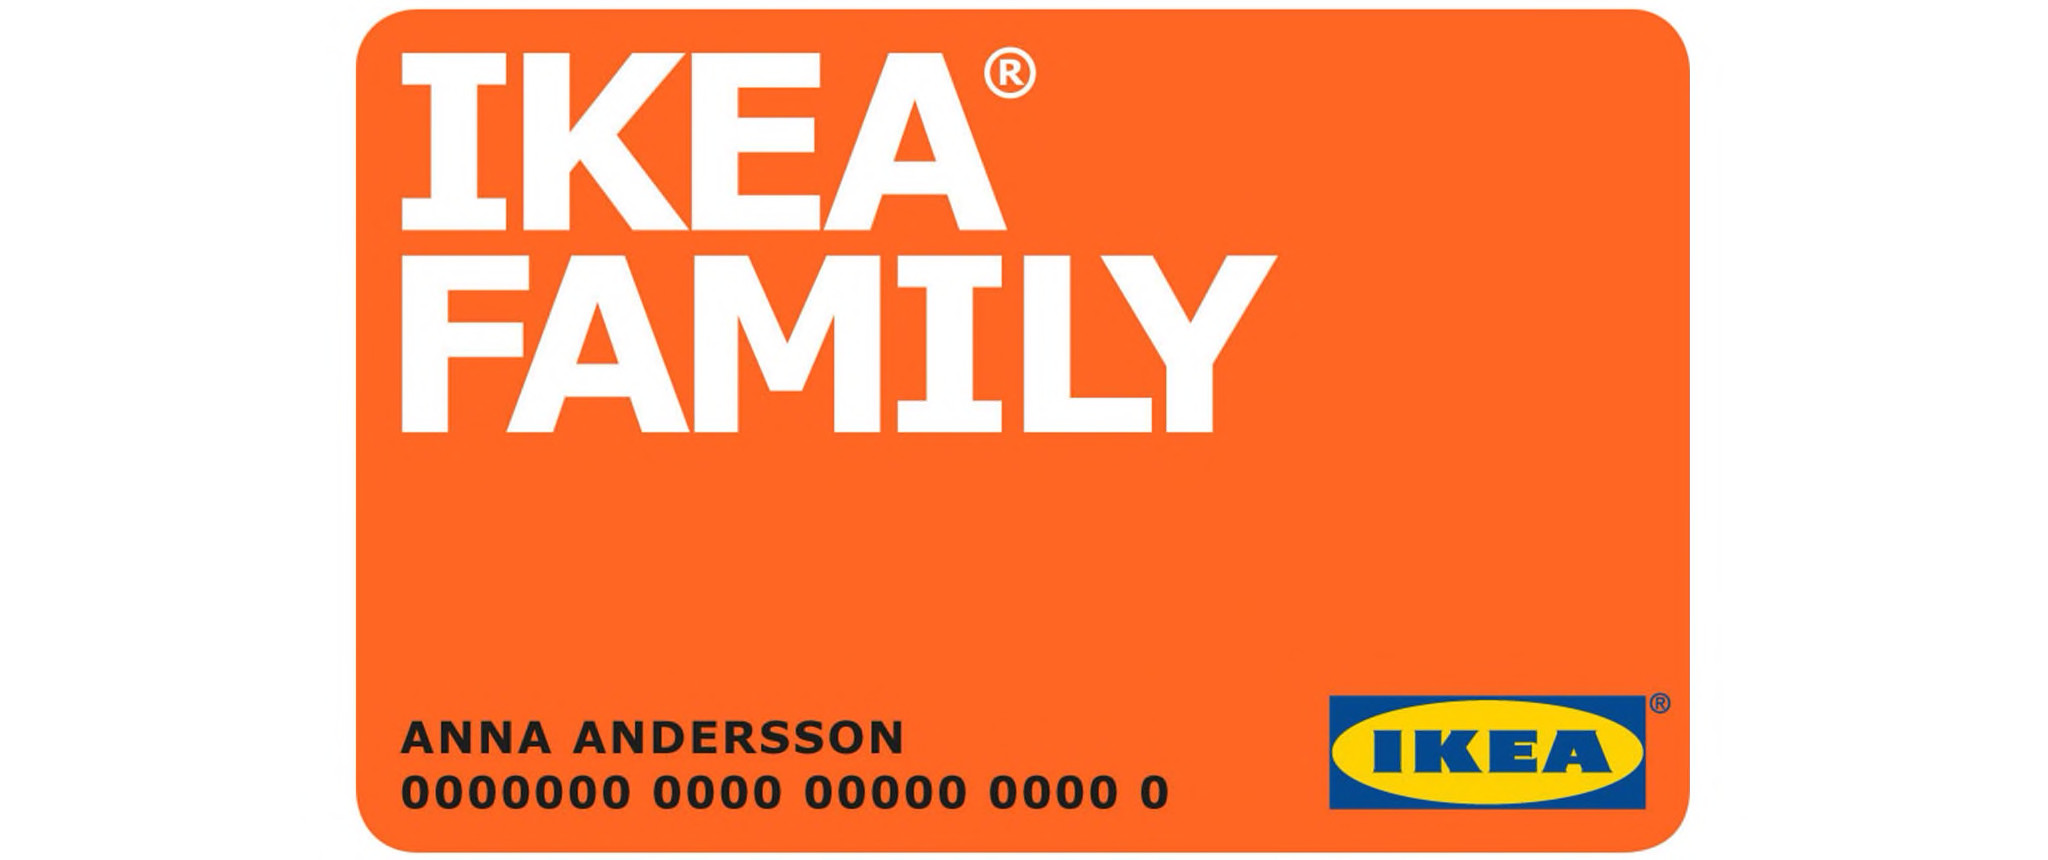 If an IKEA is on your list of potential stops, get the app or card. The free coffee and ability to check Junior into the ball room make for a terrific break for everybody!